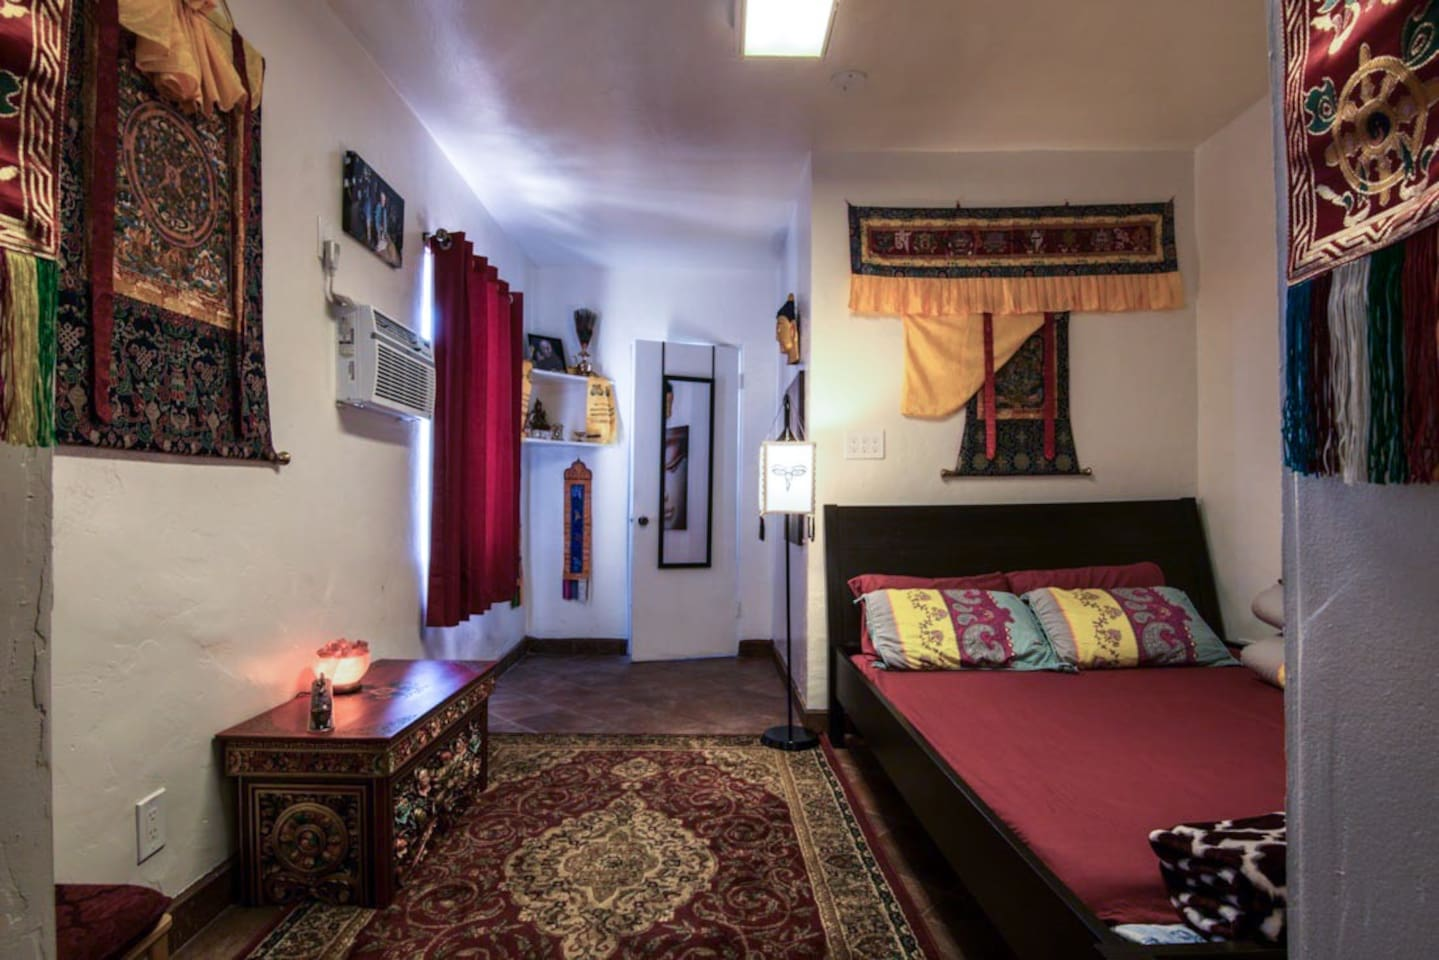 Queen-Sized room in the Tibetan/Sherpa style